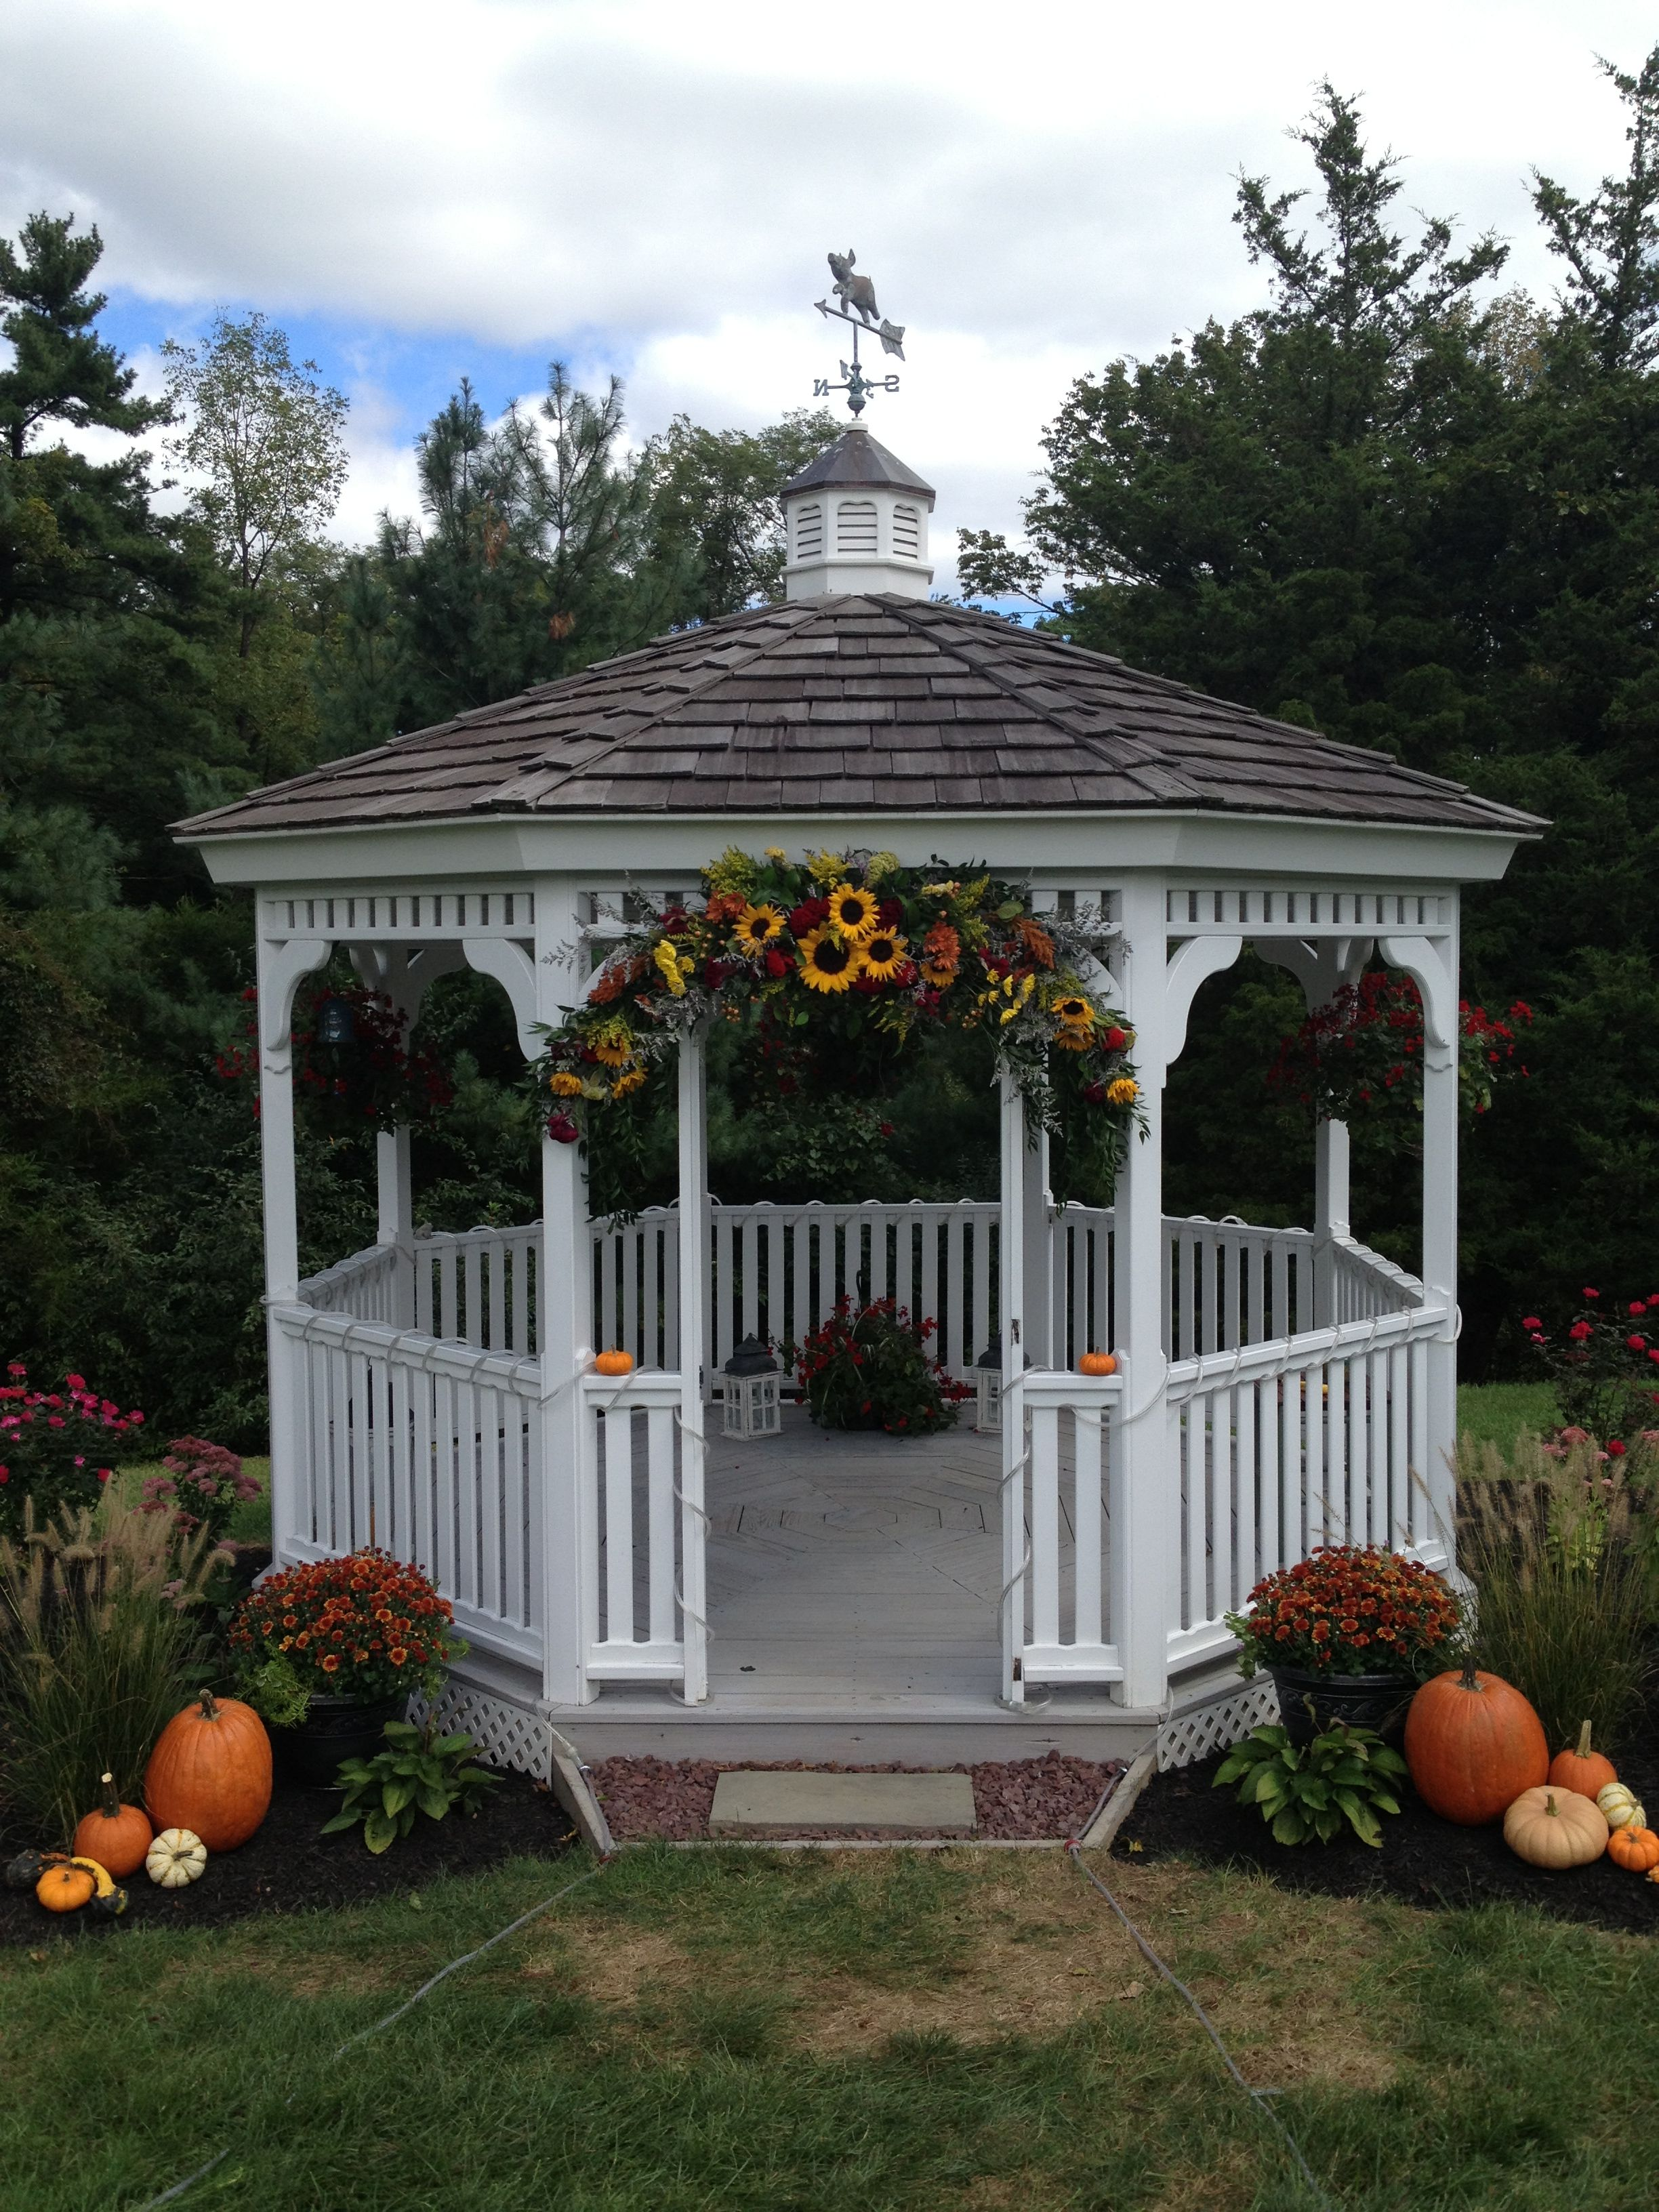 1000 ideas about Gazebo Decorations on Pinterest